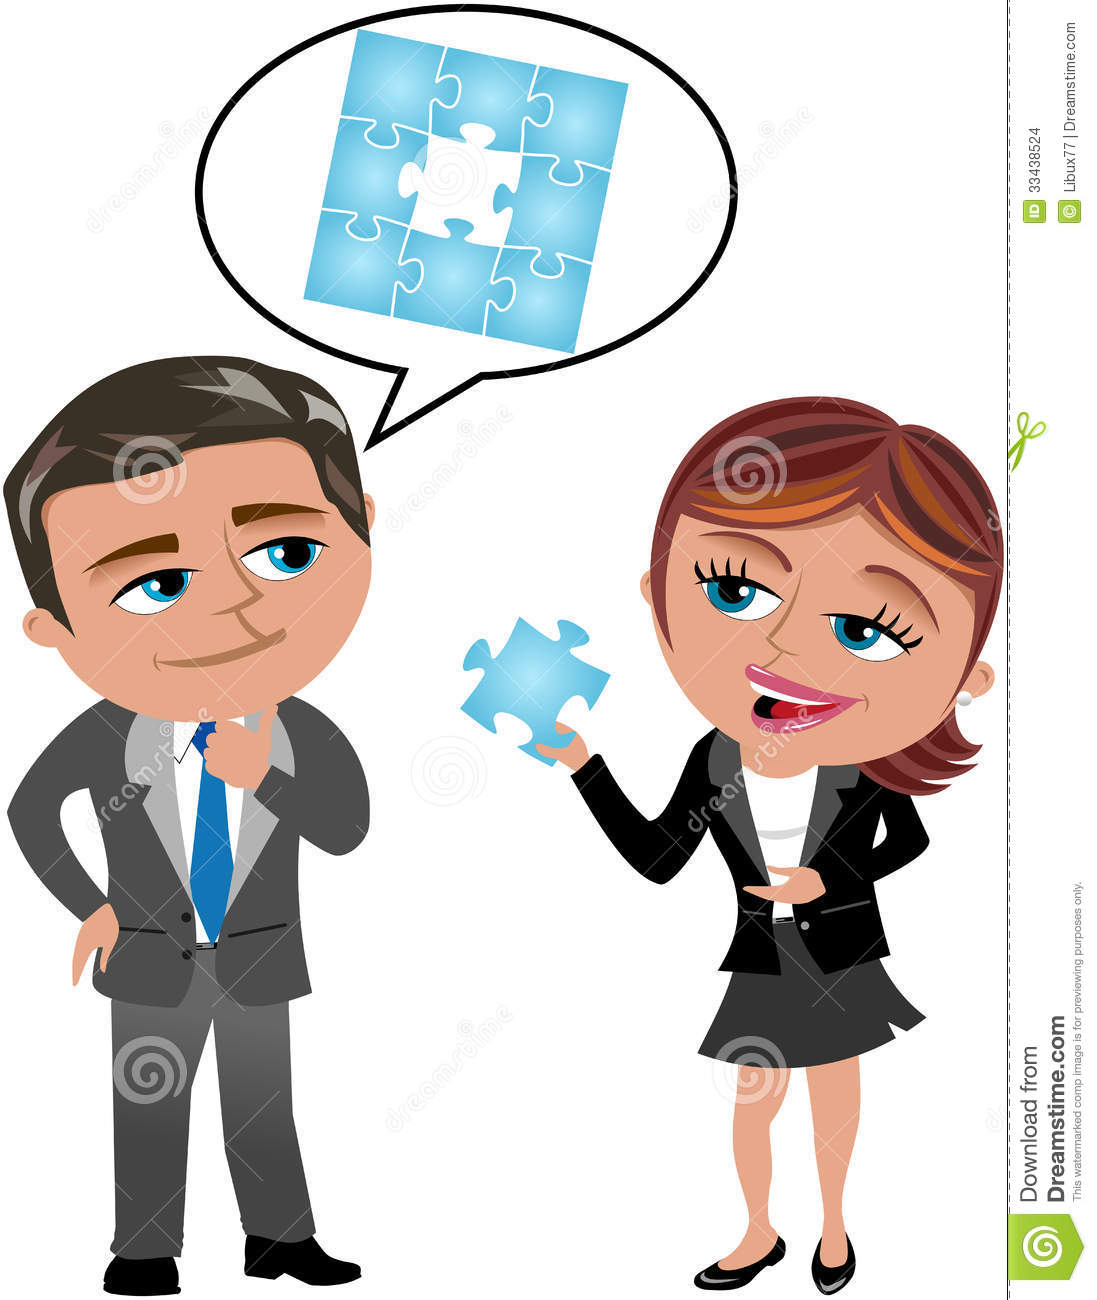 Problem Solving Concept Stock Images - Image: 33438524